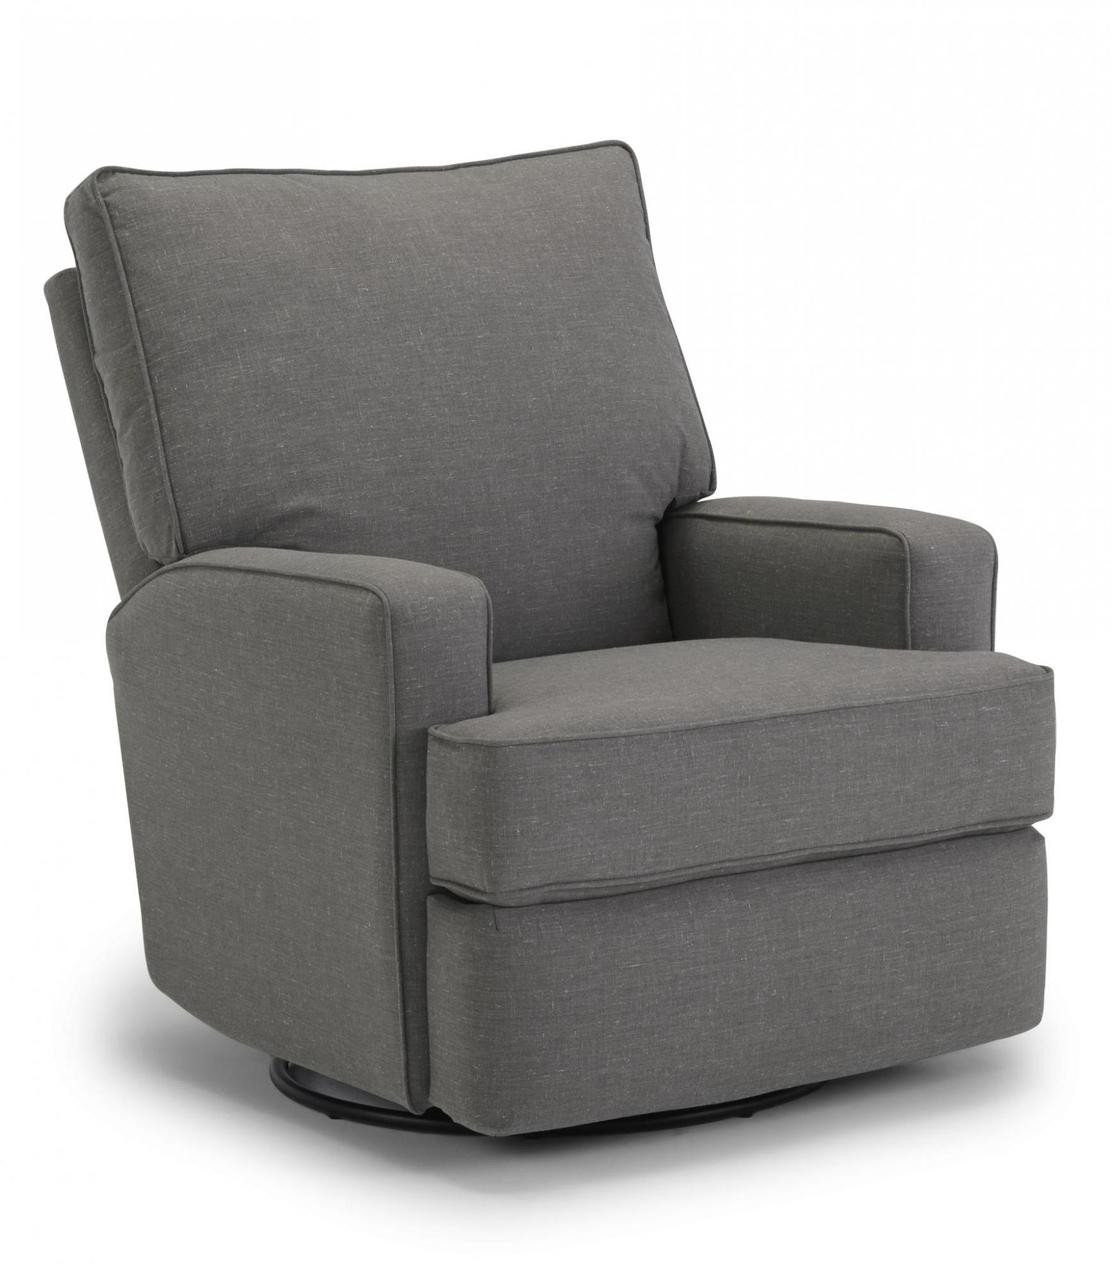 Surprising Best Chairs Kersey Swivel Glider Recliner Caraccident5 Cool Chair Designs And Ideas Caraccident5Info